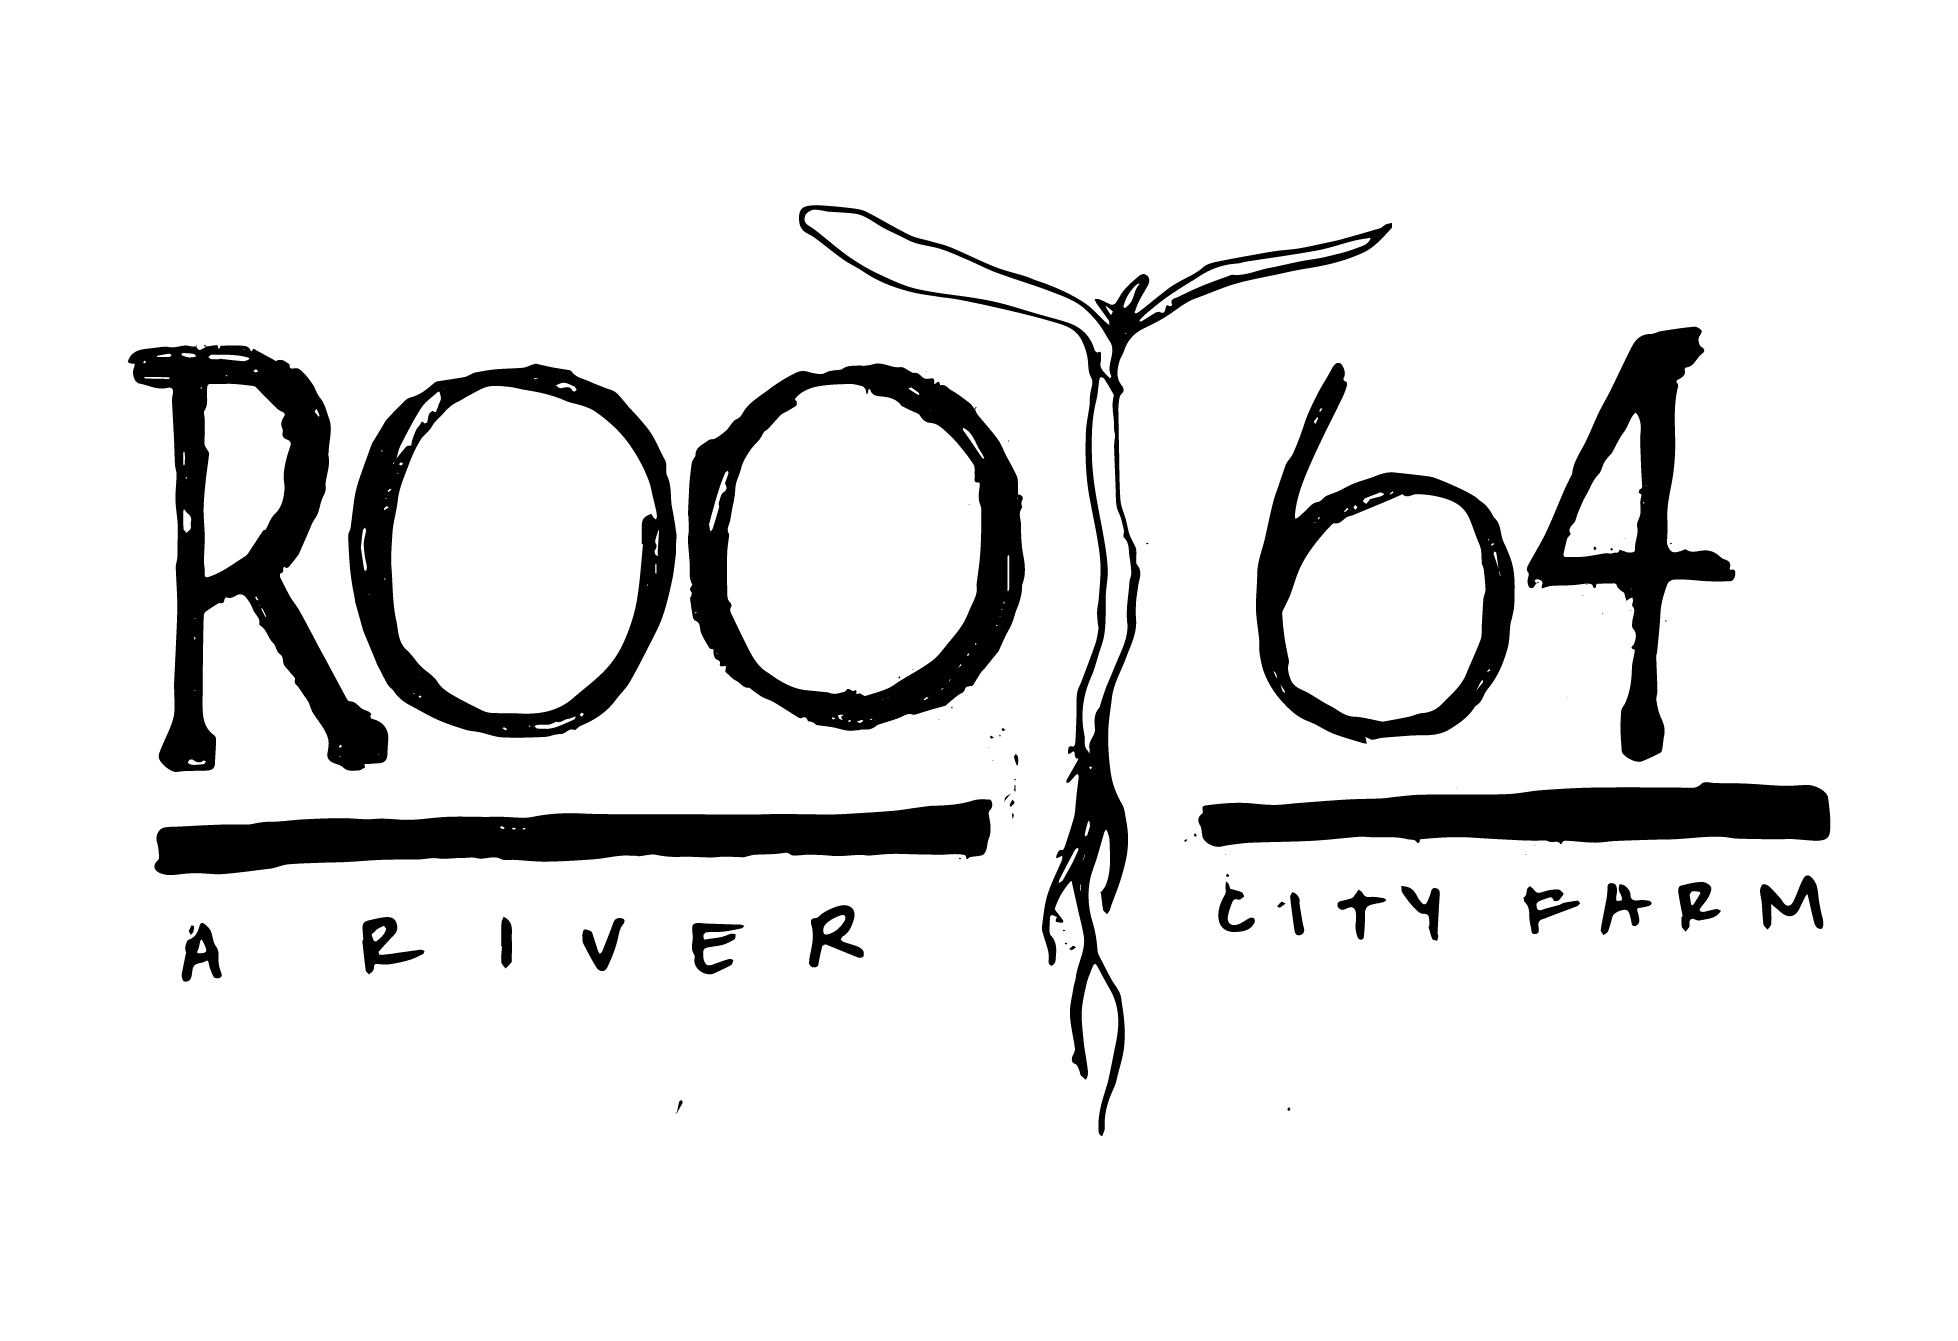 Root_64_Logo_Refinements_20180427_01_bw02.png